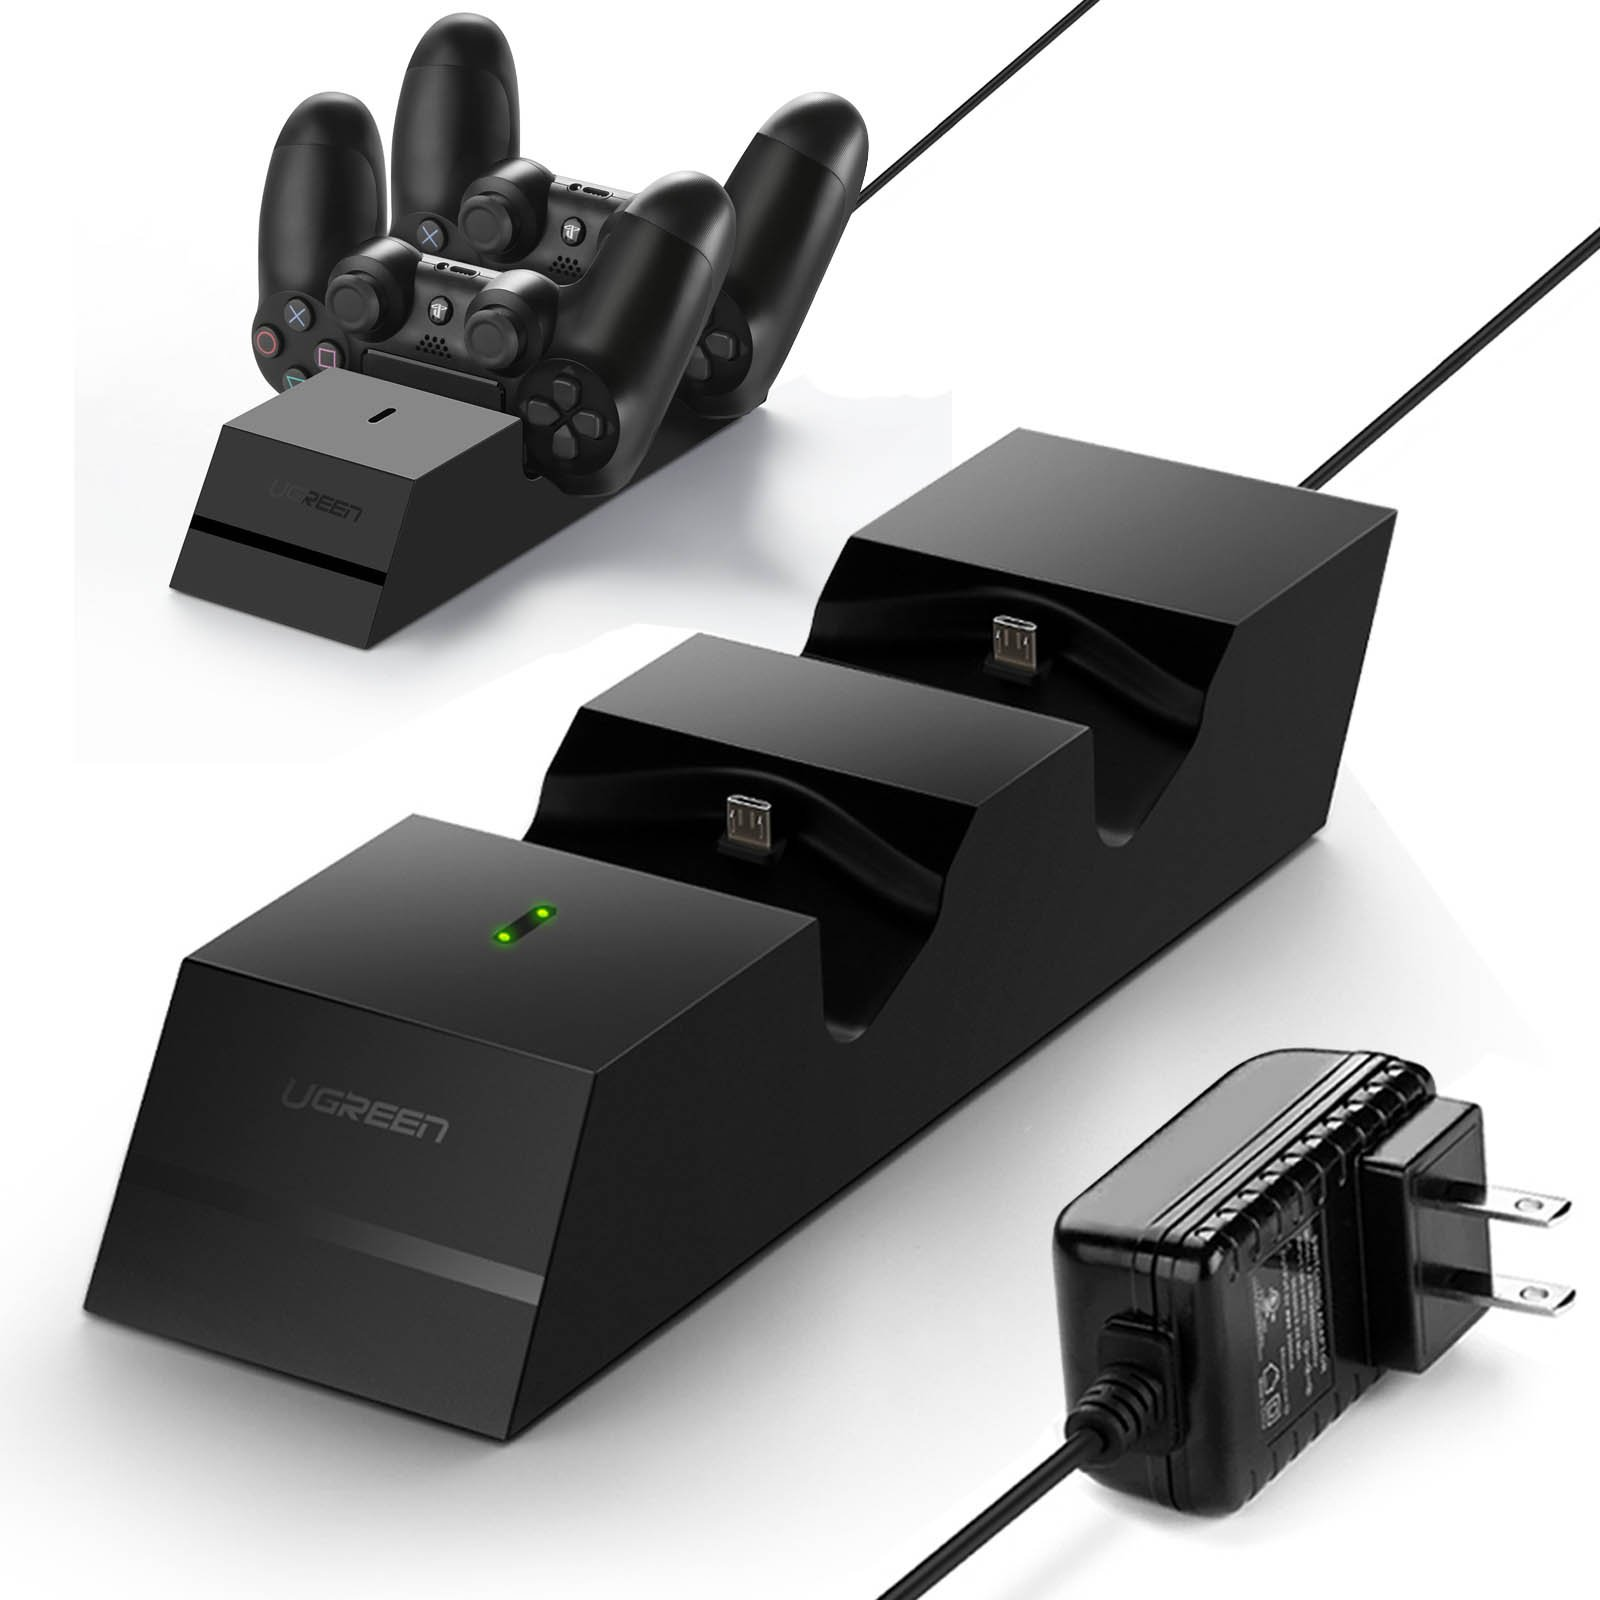 UGREEN Charger for PS4 Controller PS4 Charging Station, 2.5 Hours Full Charge for 2 Controllers, DualShock 4 Charger Dock for PlayStation PS4 Slim, PS4 Pro Controller (5FT Cable with AC adapter)